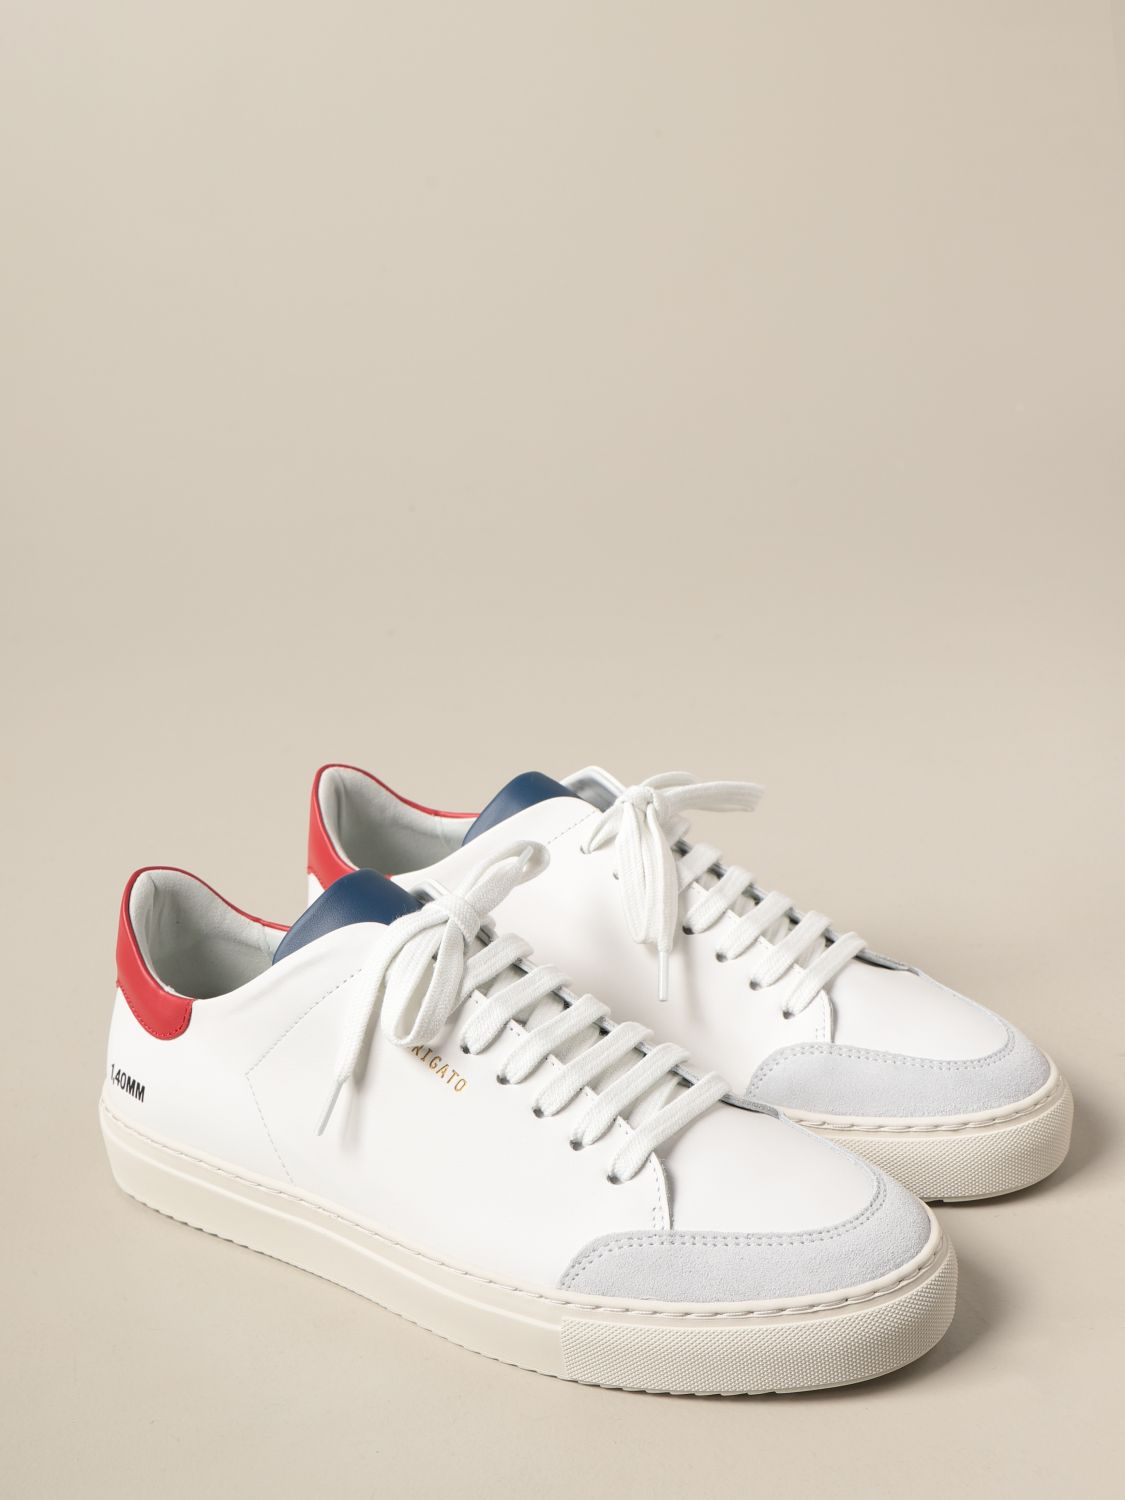 Trainers Axel Arigato: Shoes men Axel Arigato red 2